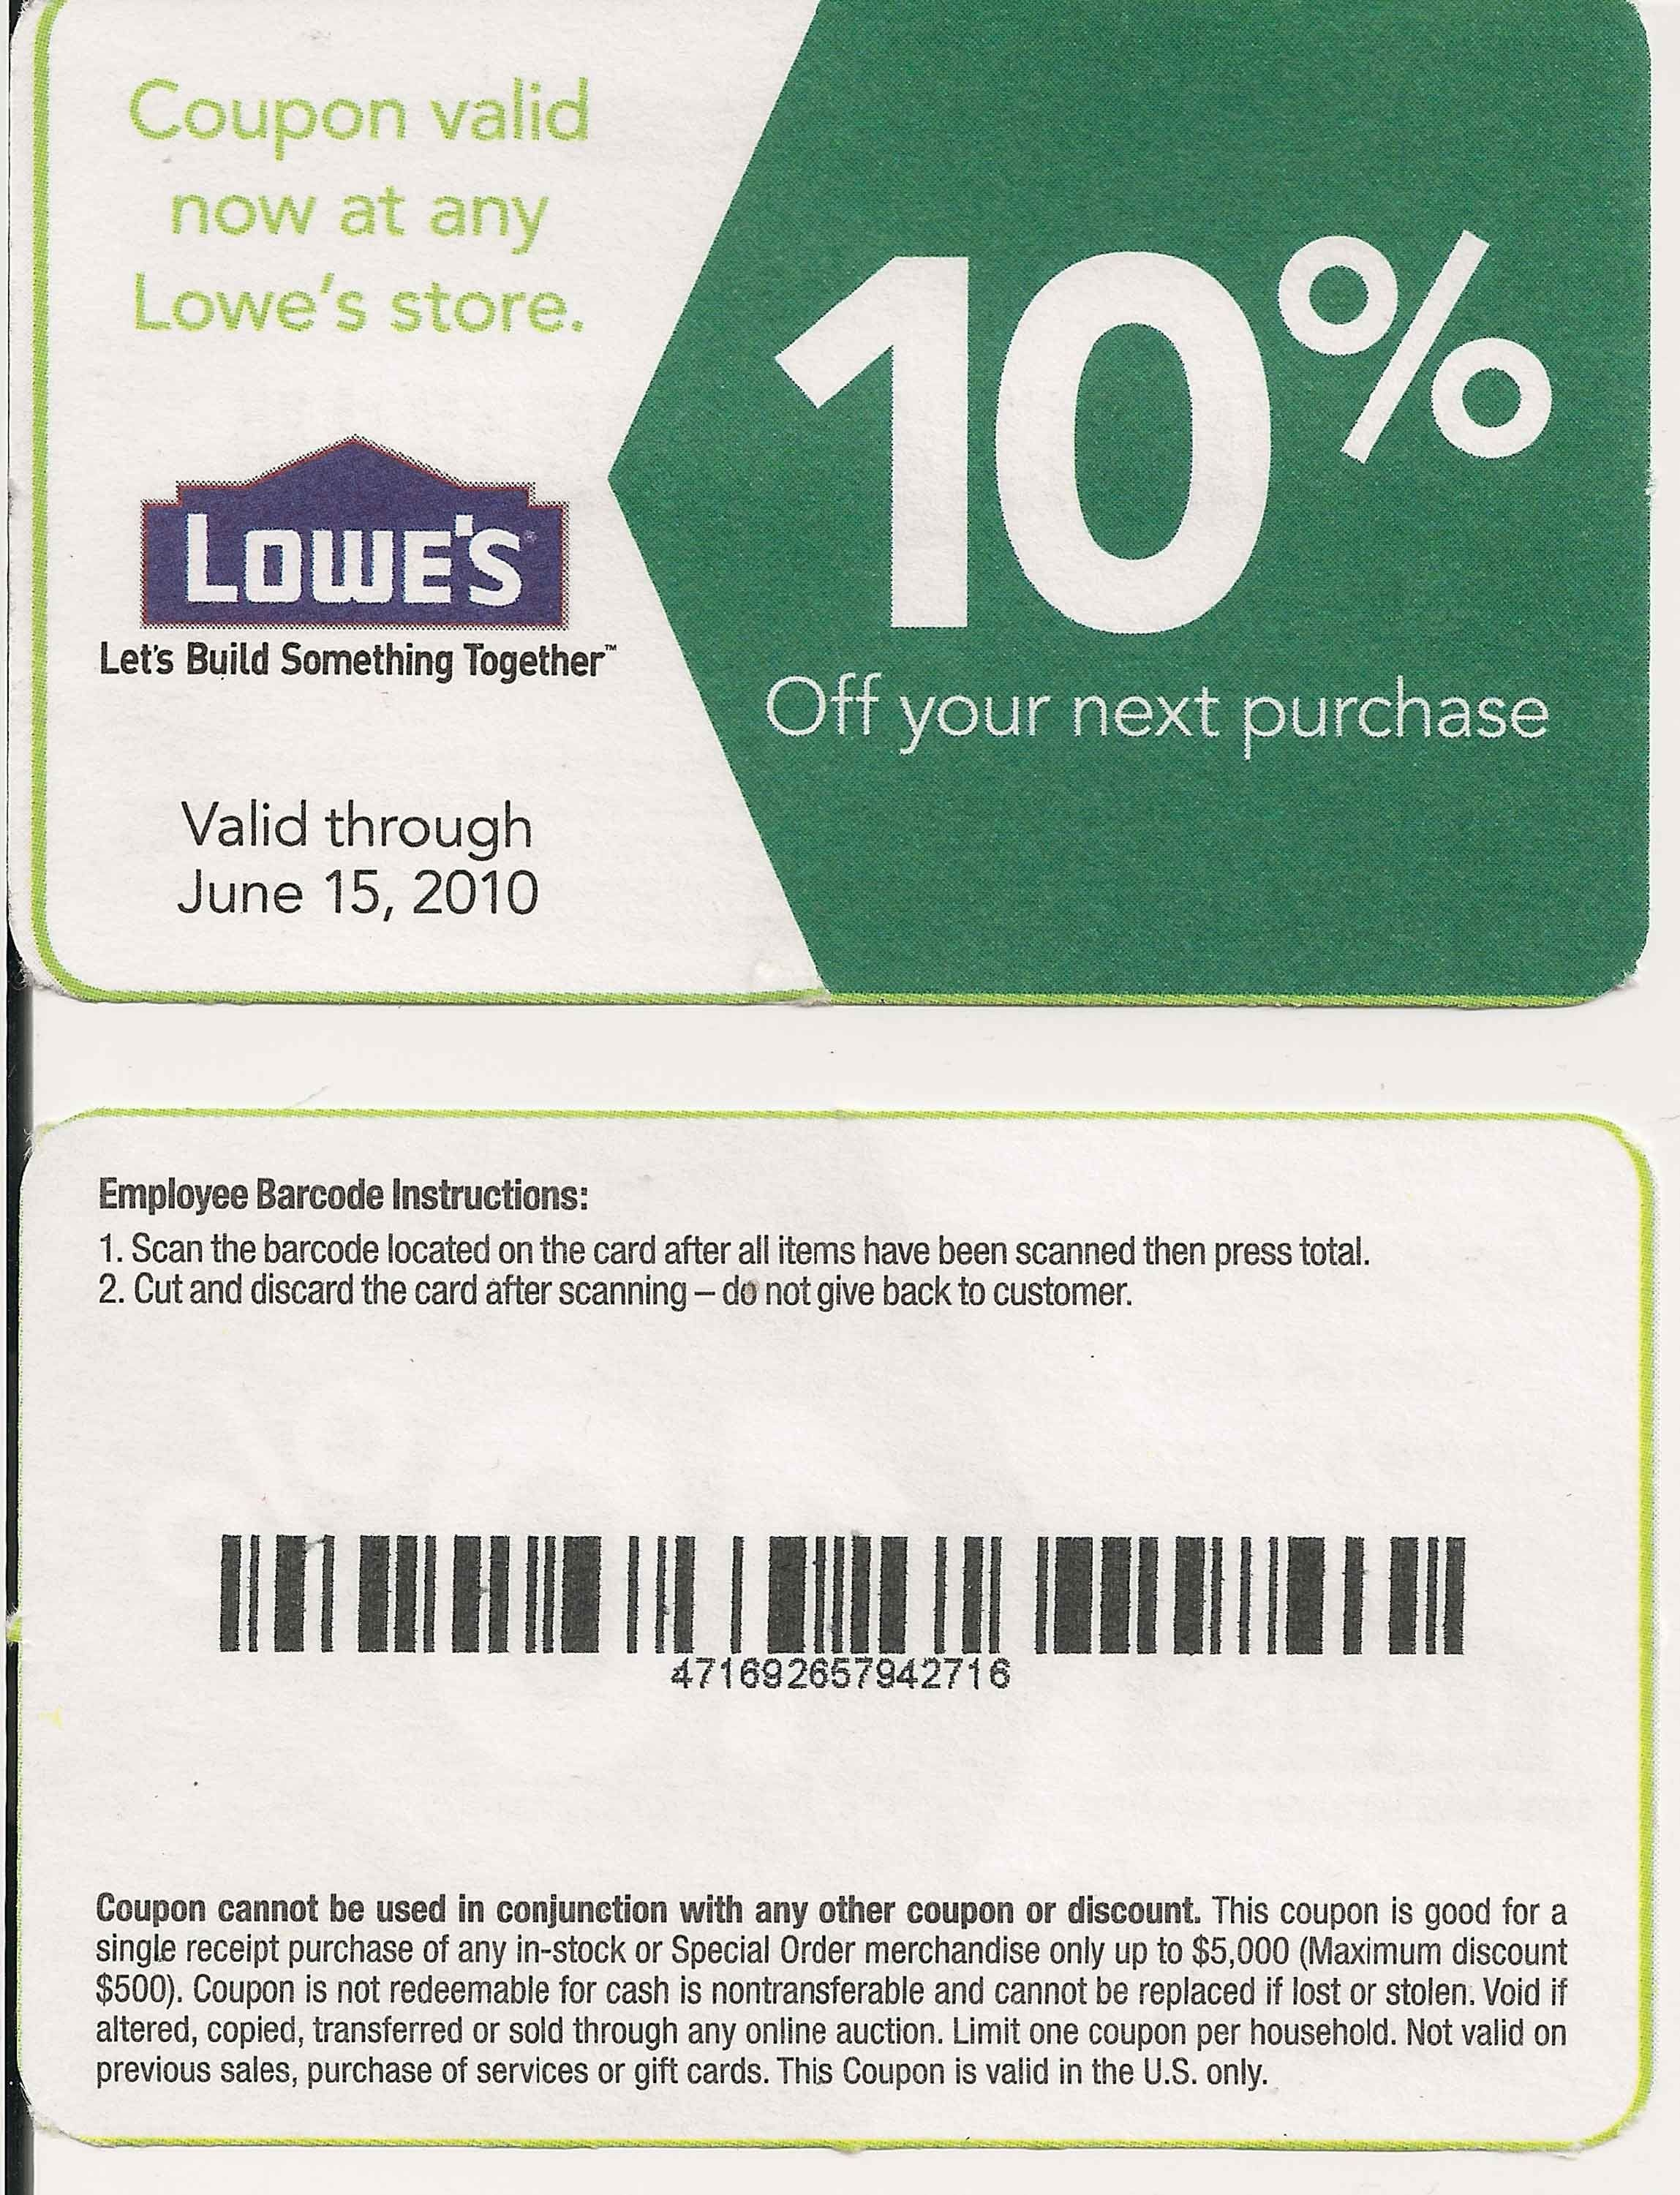 Printable Lowes Coupon 20% Off &10 Off Codes December 2016 | Stuff - Free Printable Lowes Coupons